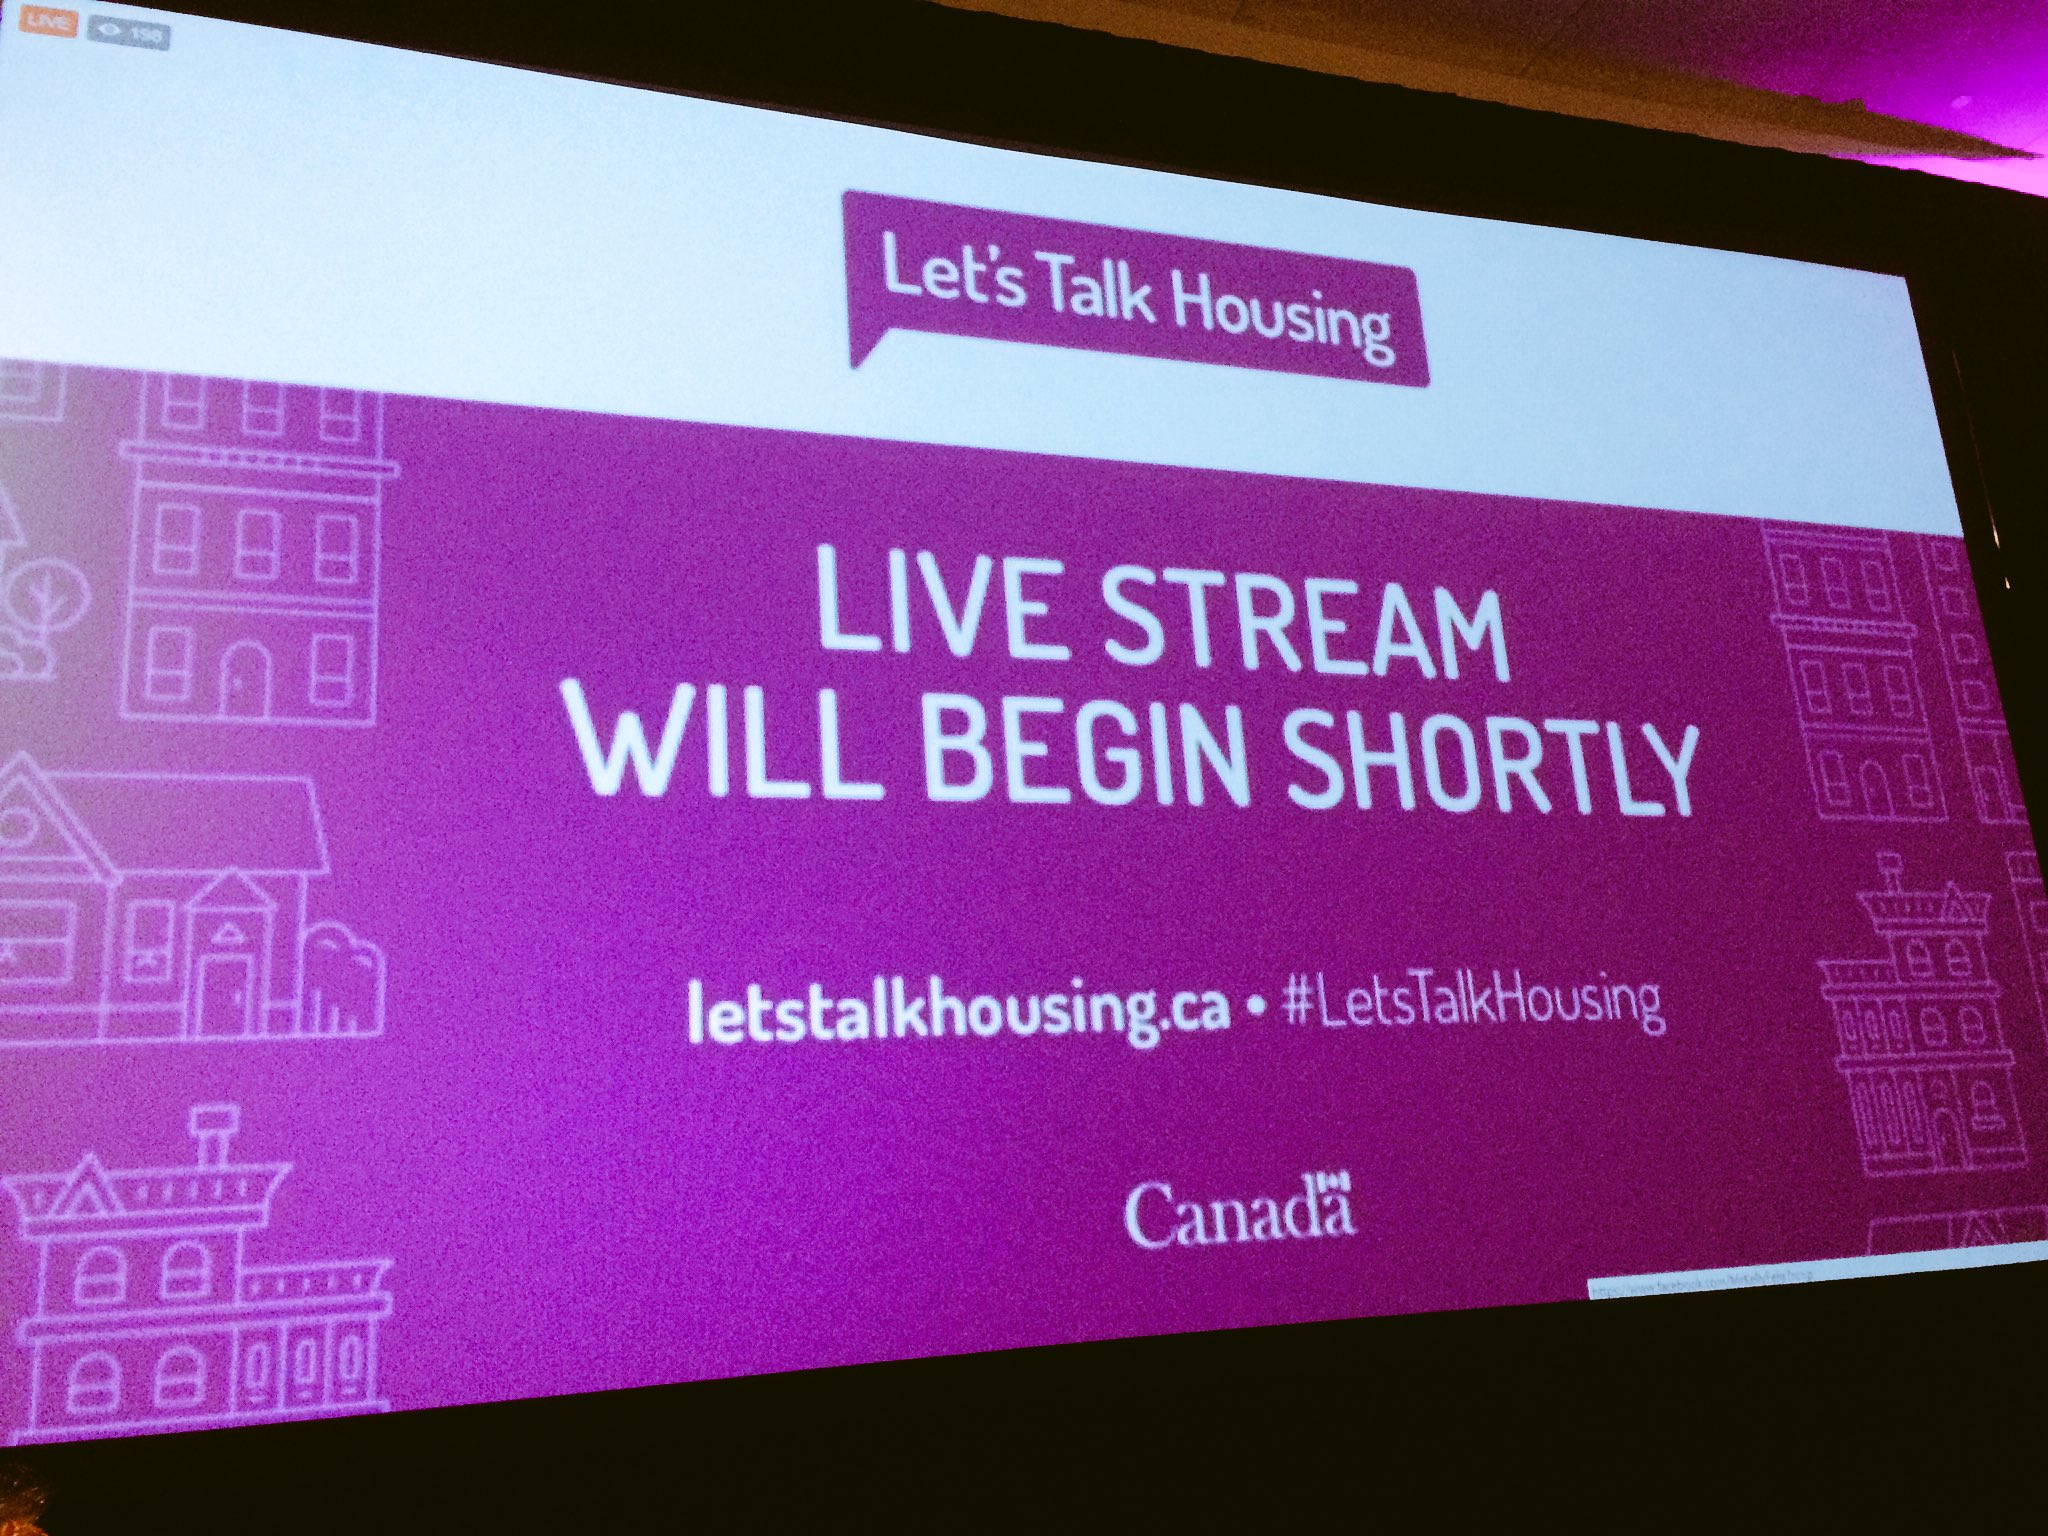 Minister @jyduclos @CMHC_ca to outline results of National Housing Strategy Consultation #LetsTalkHousing #NationalHousingDay https://t.co/IaT0VlZnvO